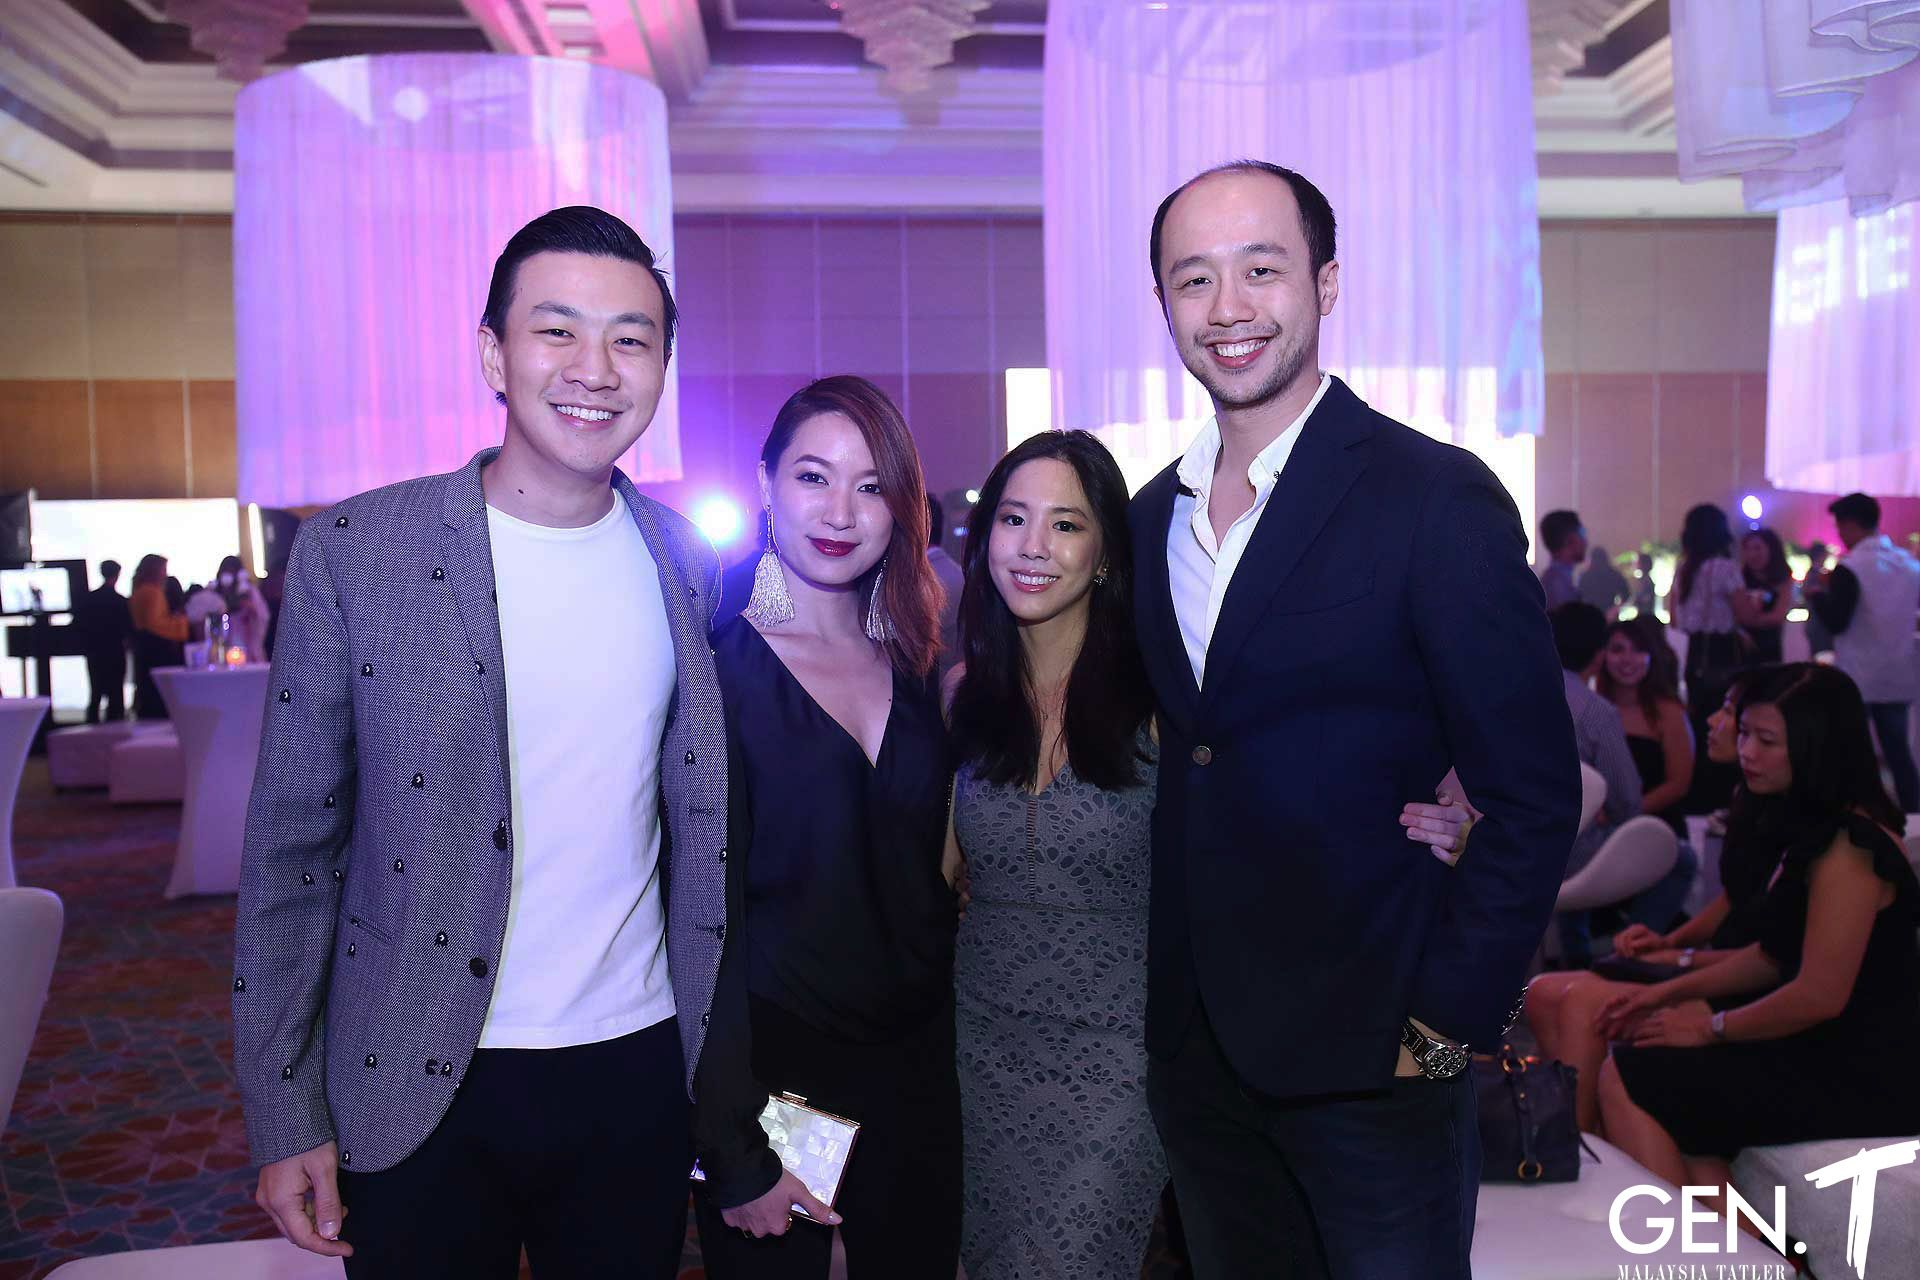 James Yam, Sheryl Oon, Li Sheen Mah and Dion Tan